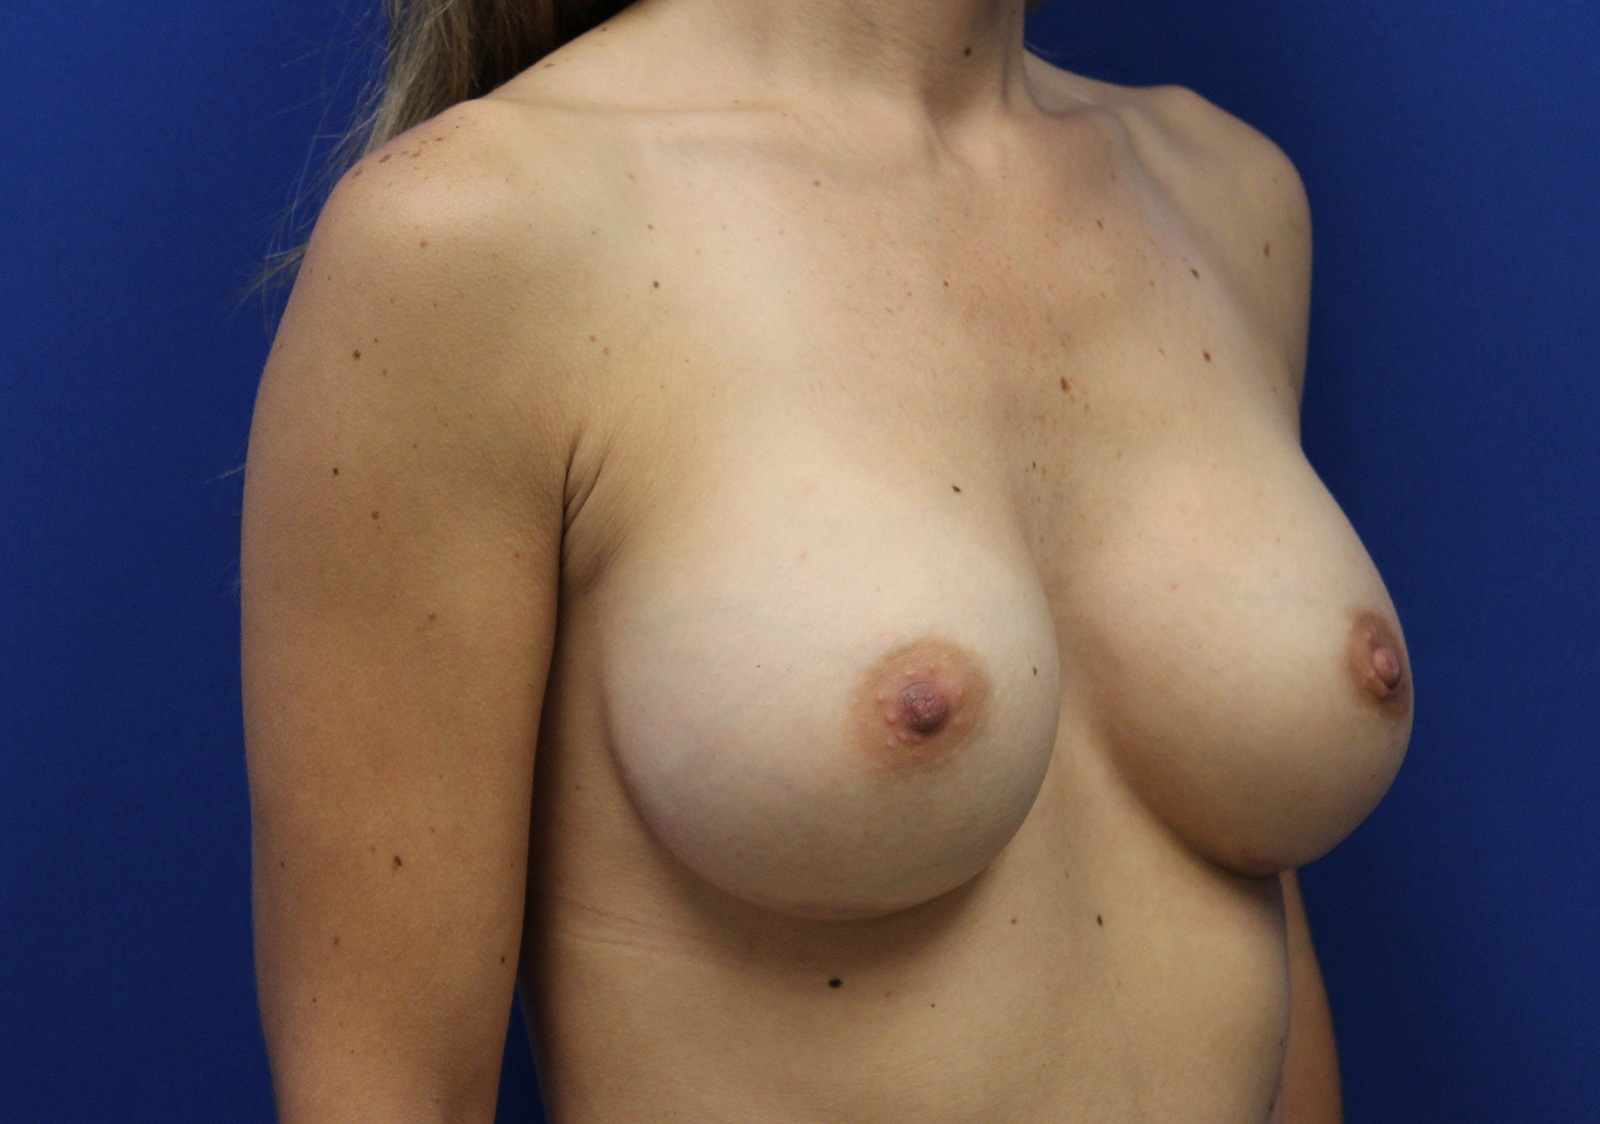 Breasts, By Florence Williams